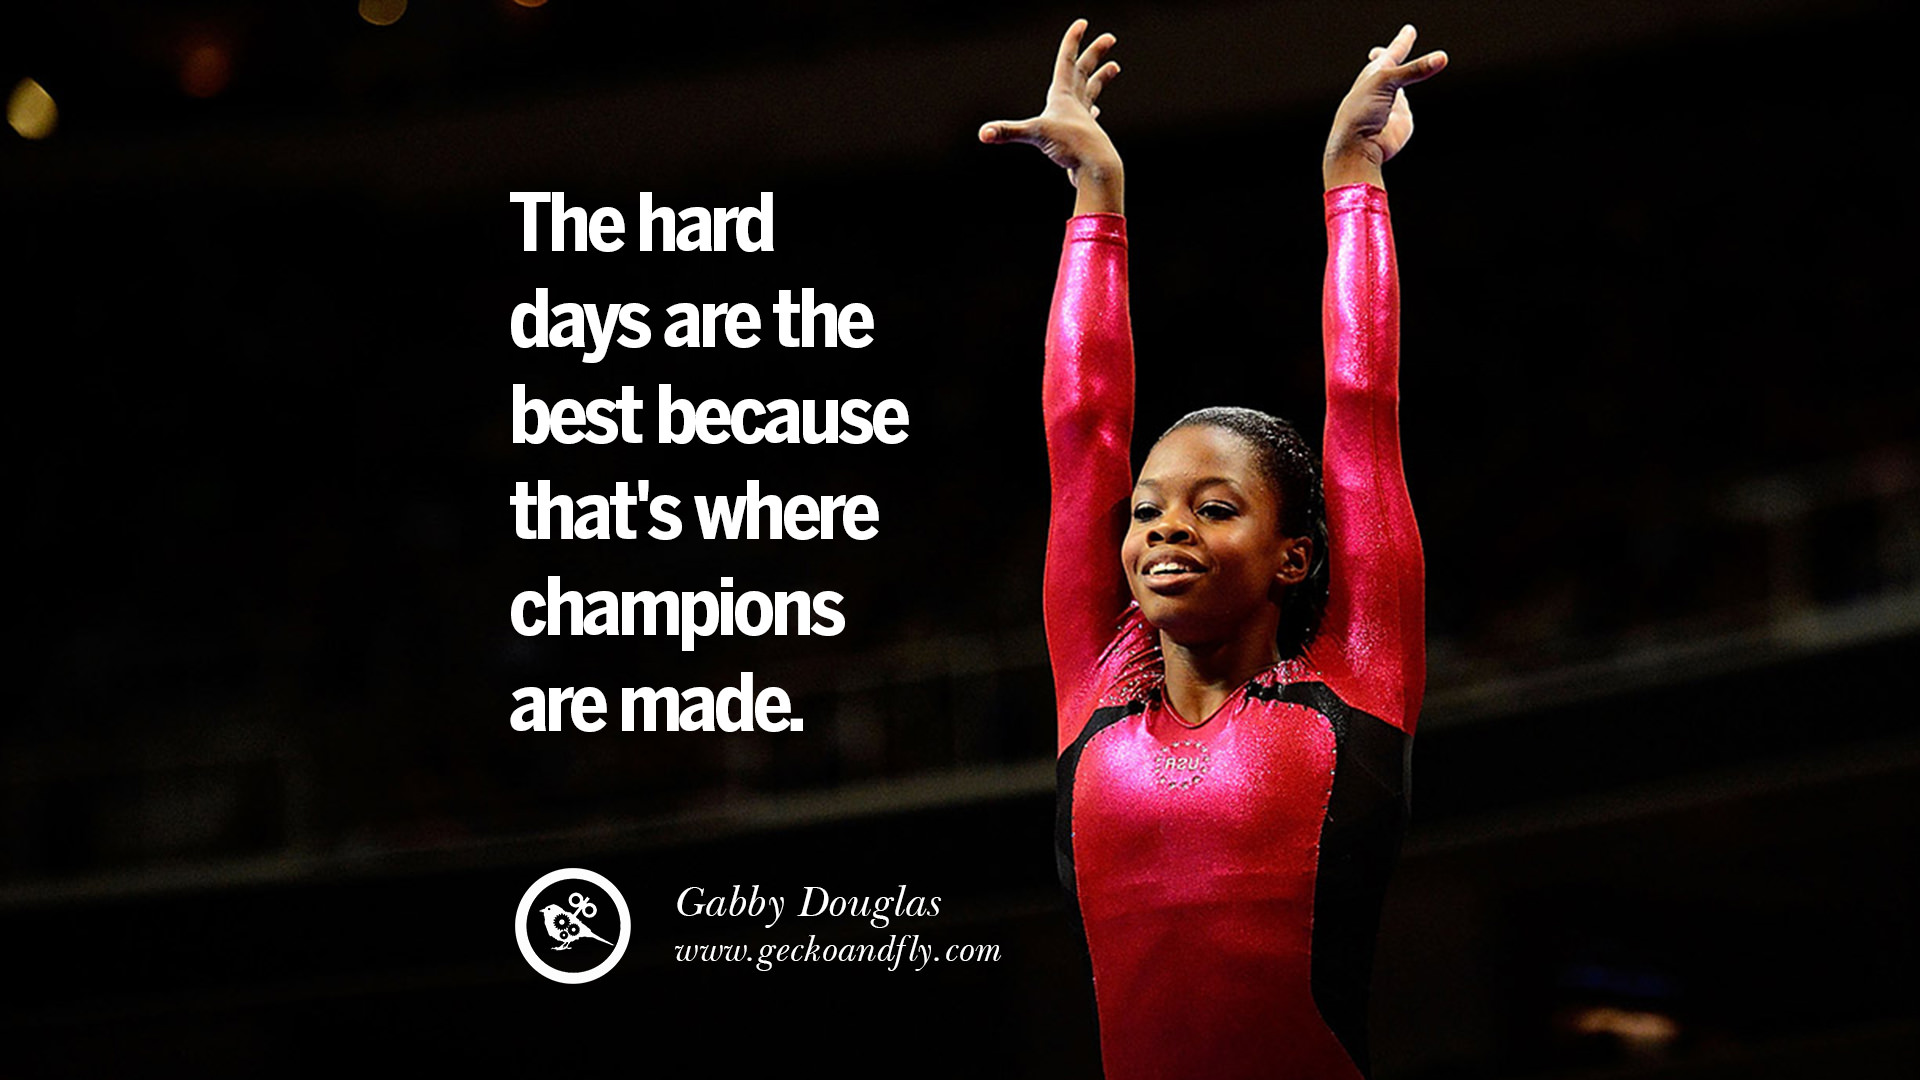 quotes-olympics-Rio-Gabby-Douglas - Fit Over 40 Challenge